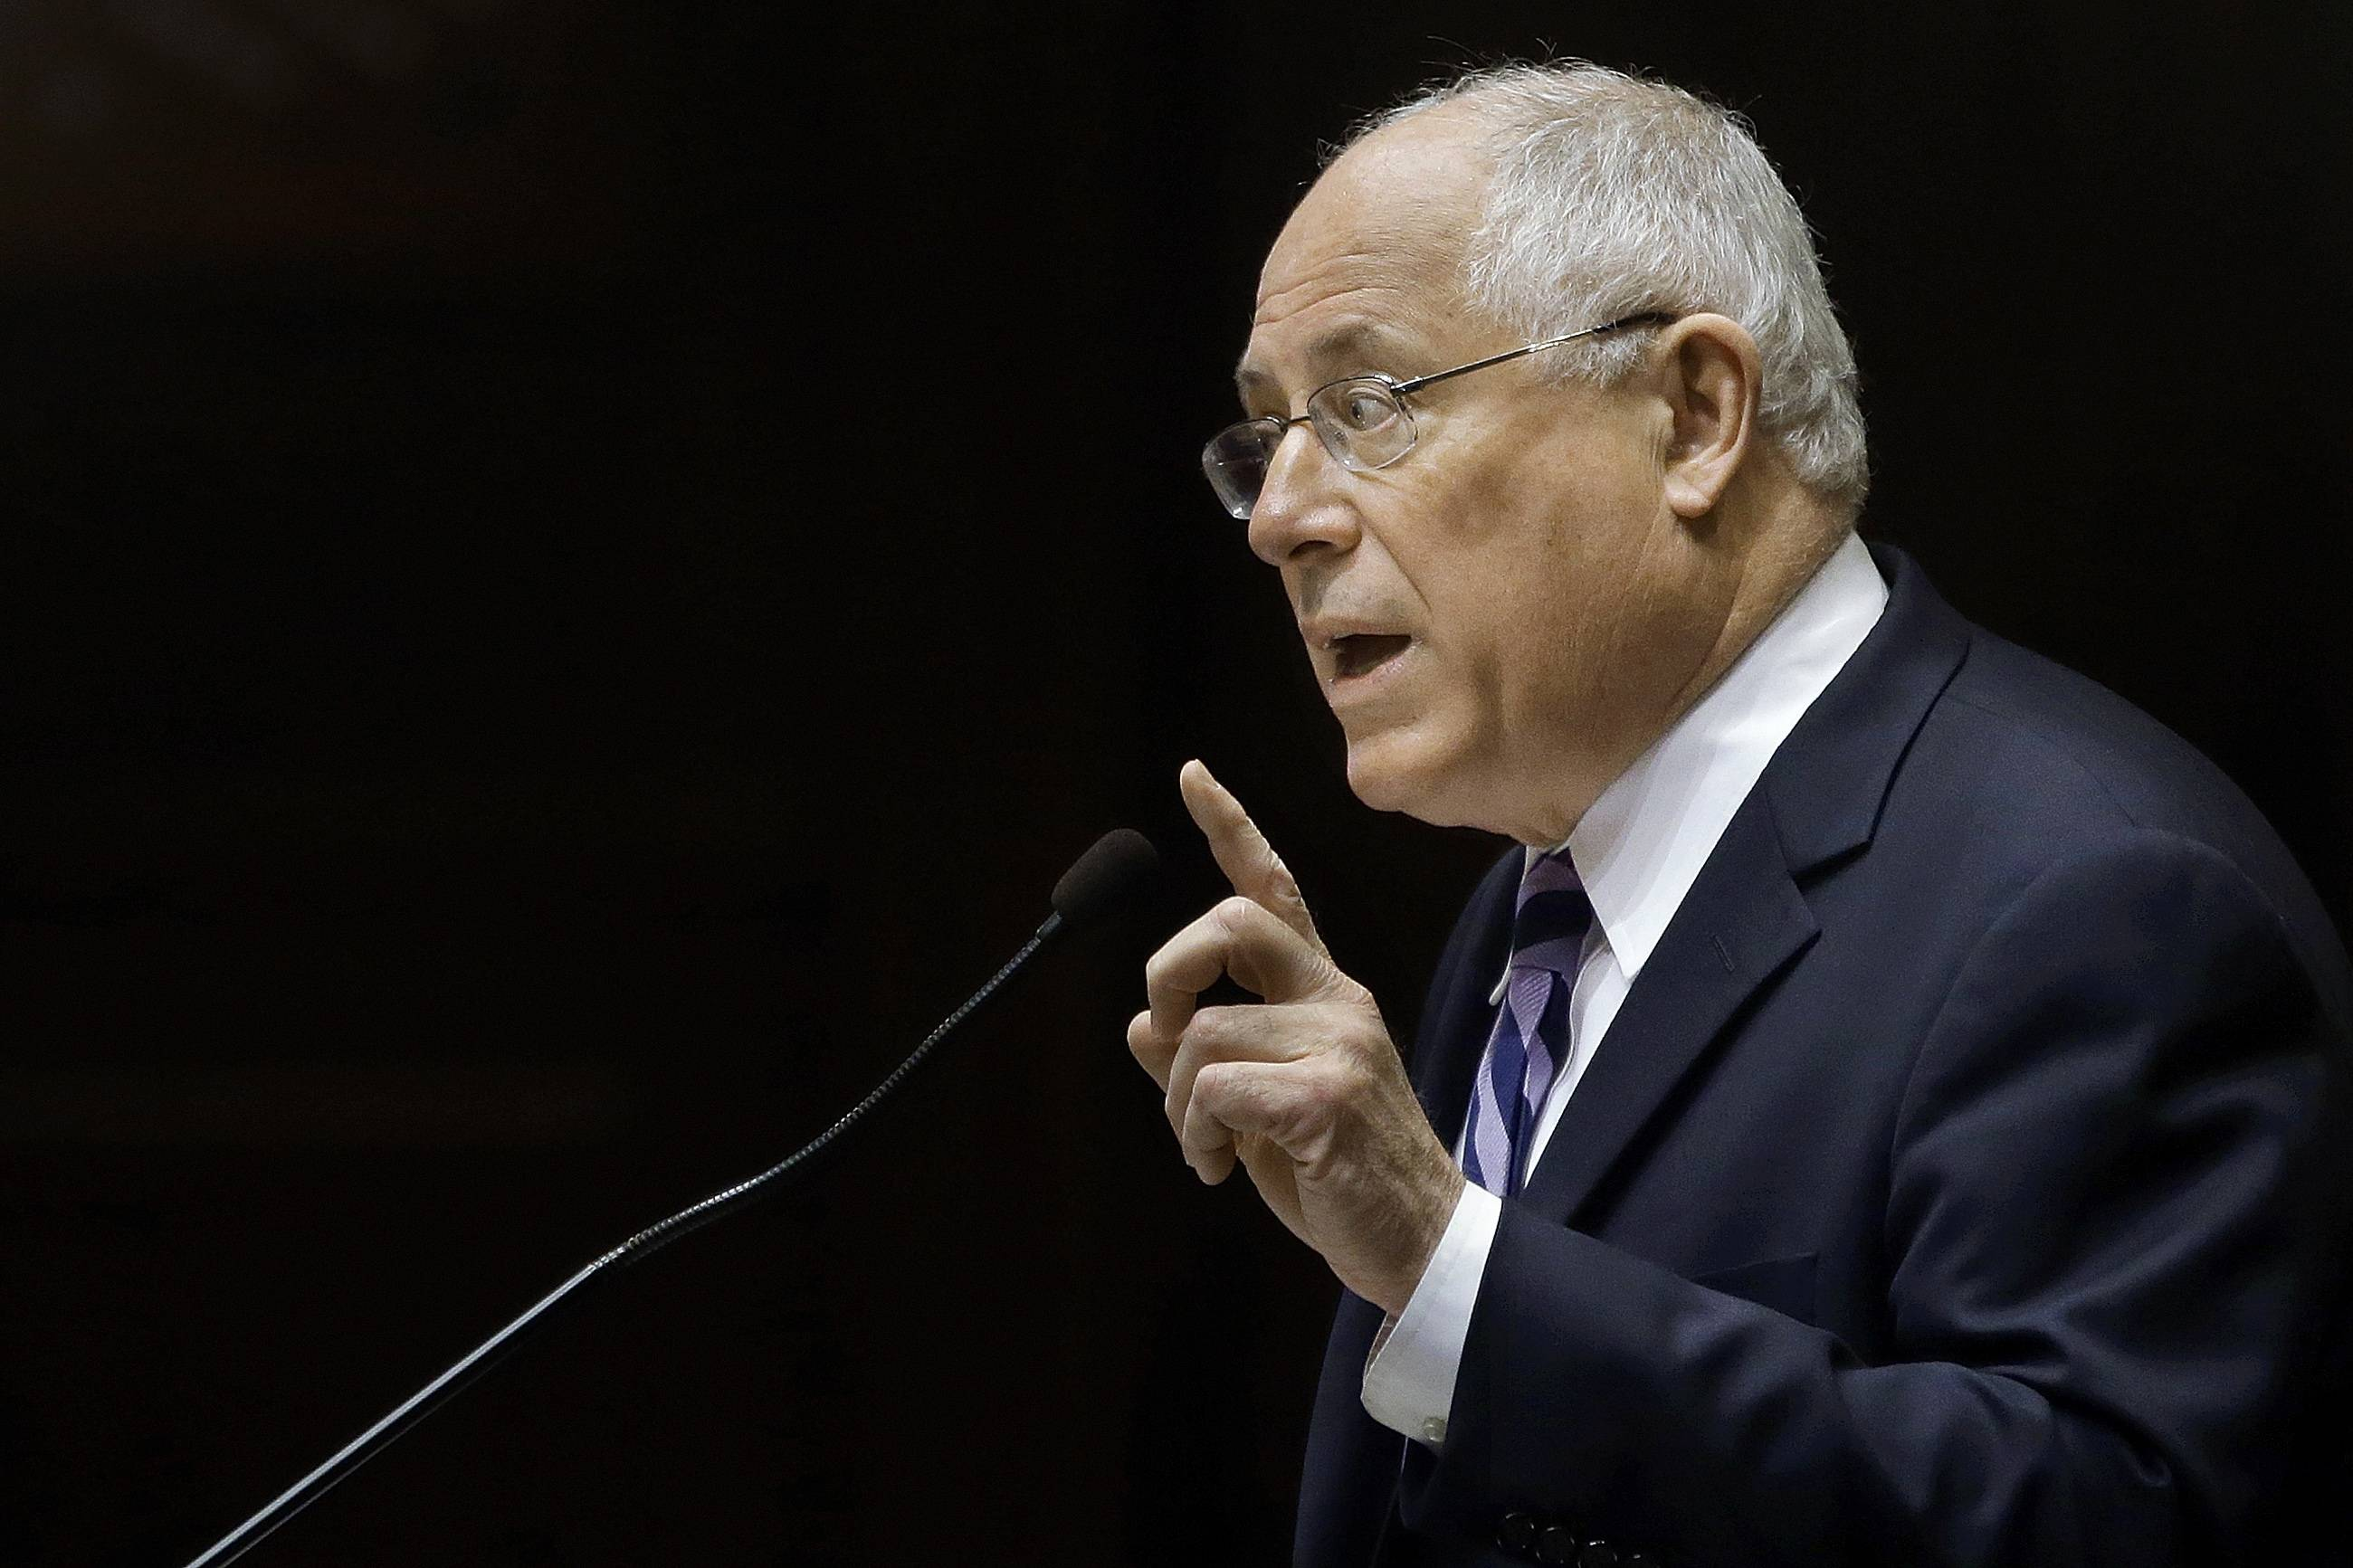 In his March budget address, Gov. Pat Quinn called for an extension of the Illinois income tax increase or else the state face deep budget cuts. The spending plan being moved by lawmakers includes neither.